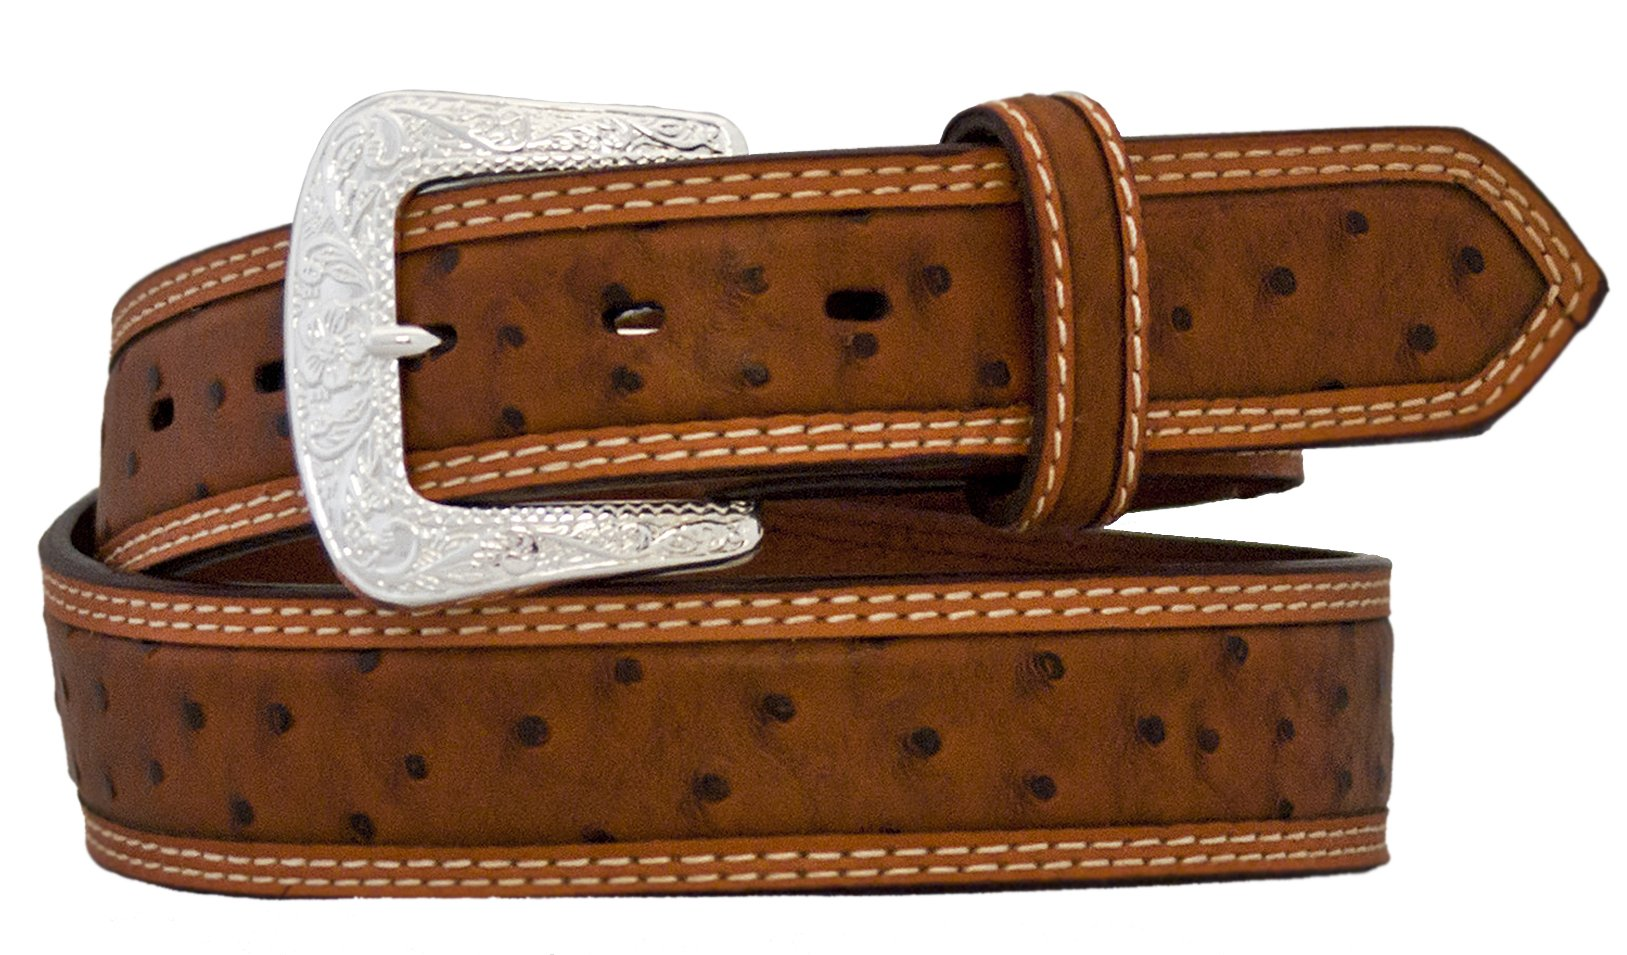 Silver Canyon Mens 1.5'' Leather Embossed Ostrich Print with Accent Edge Peanut Brittle Belt, 36